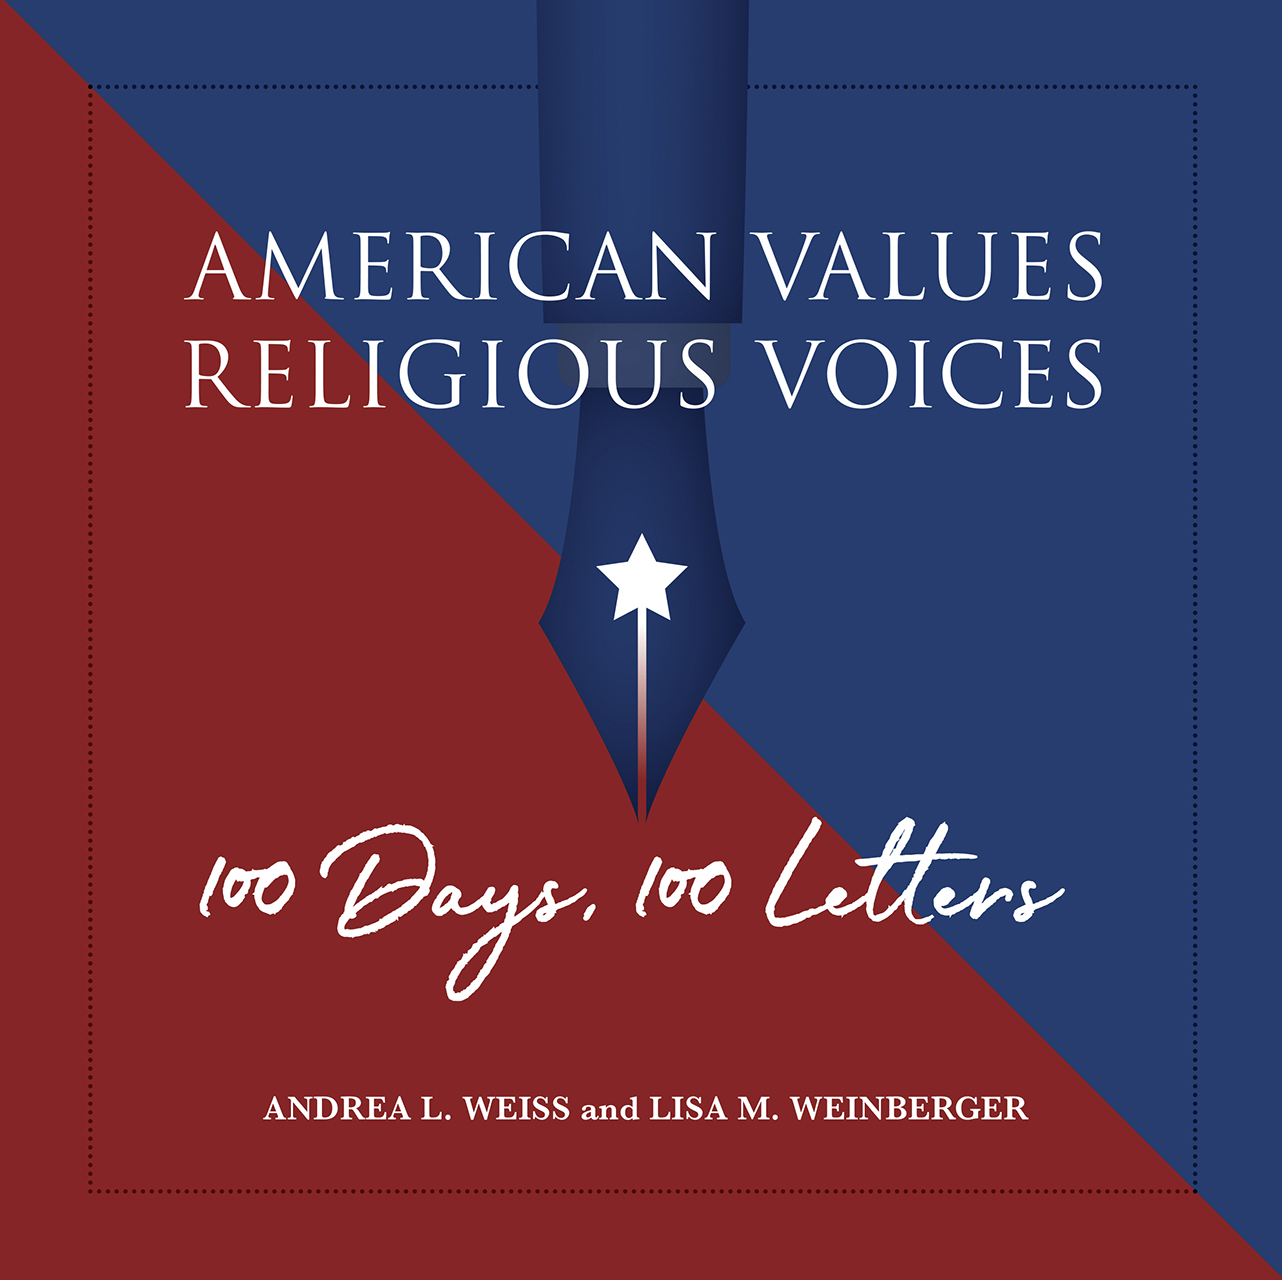 American Values, Religious Voices: 100 Days. 100 Letters